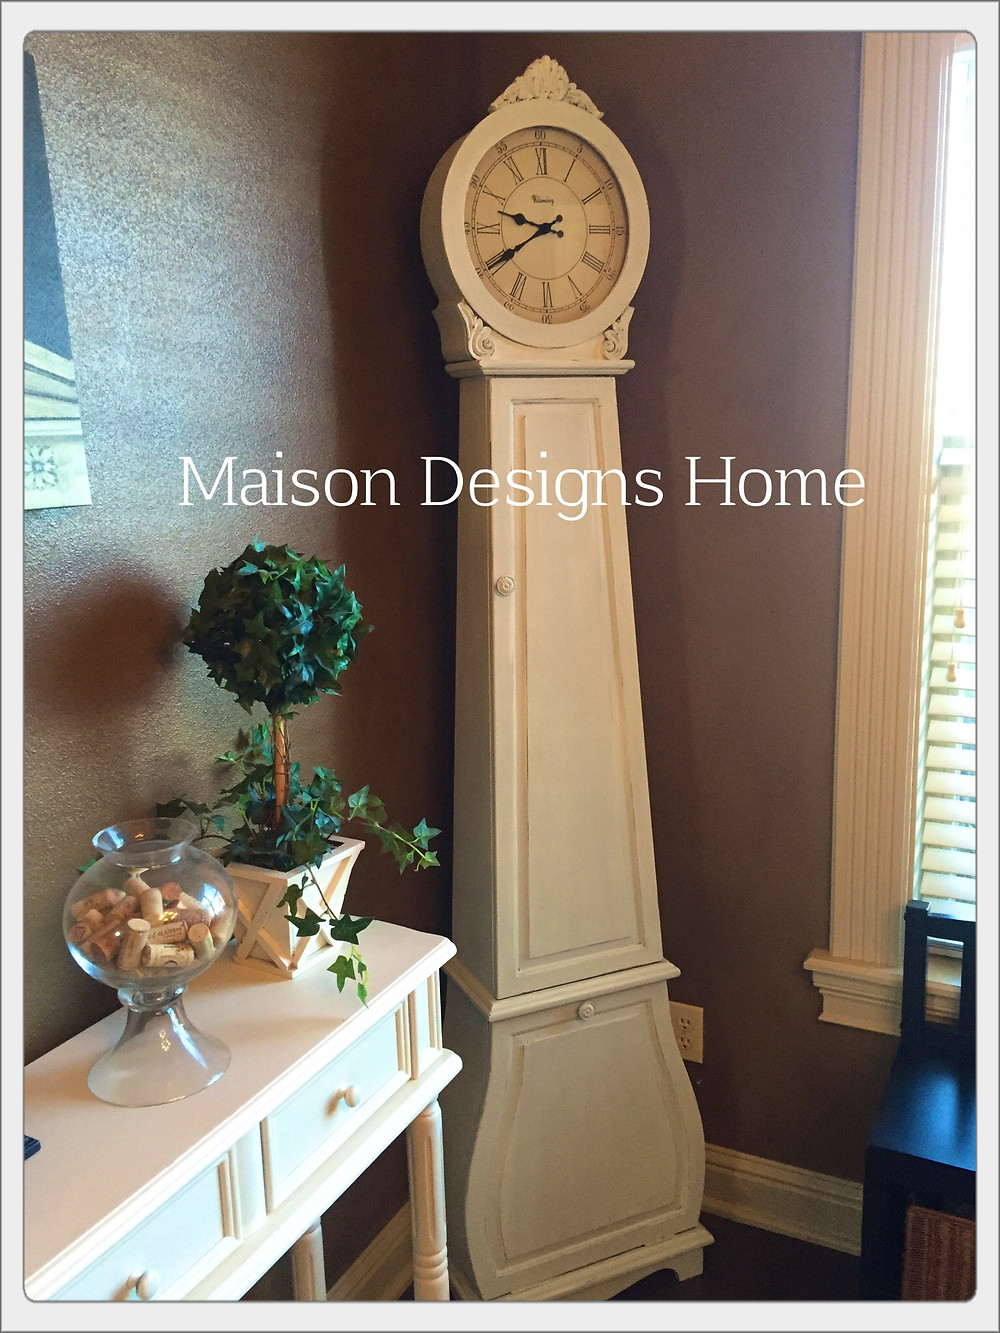 Wall Clock-Maison Designs Home